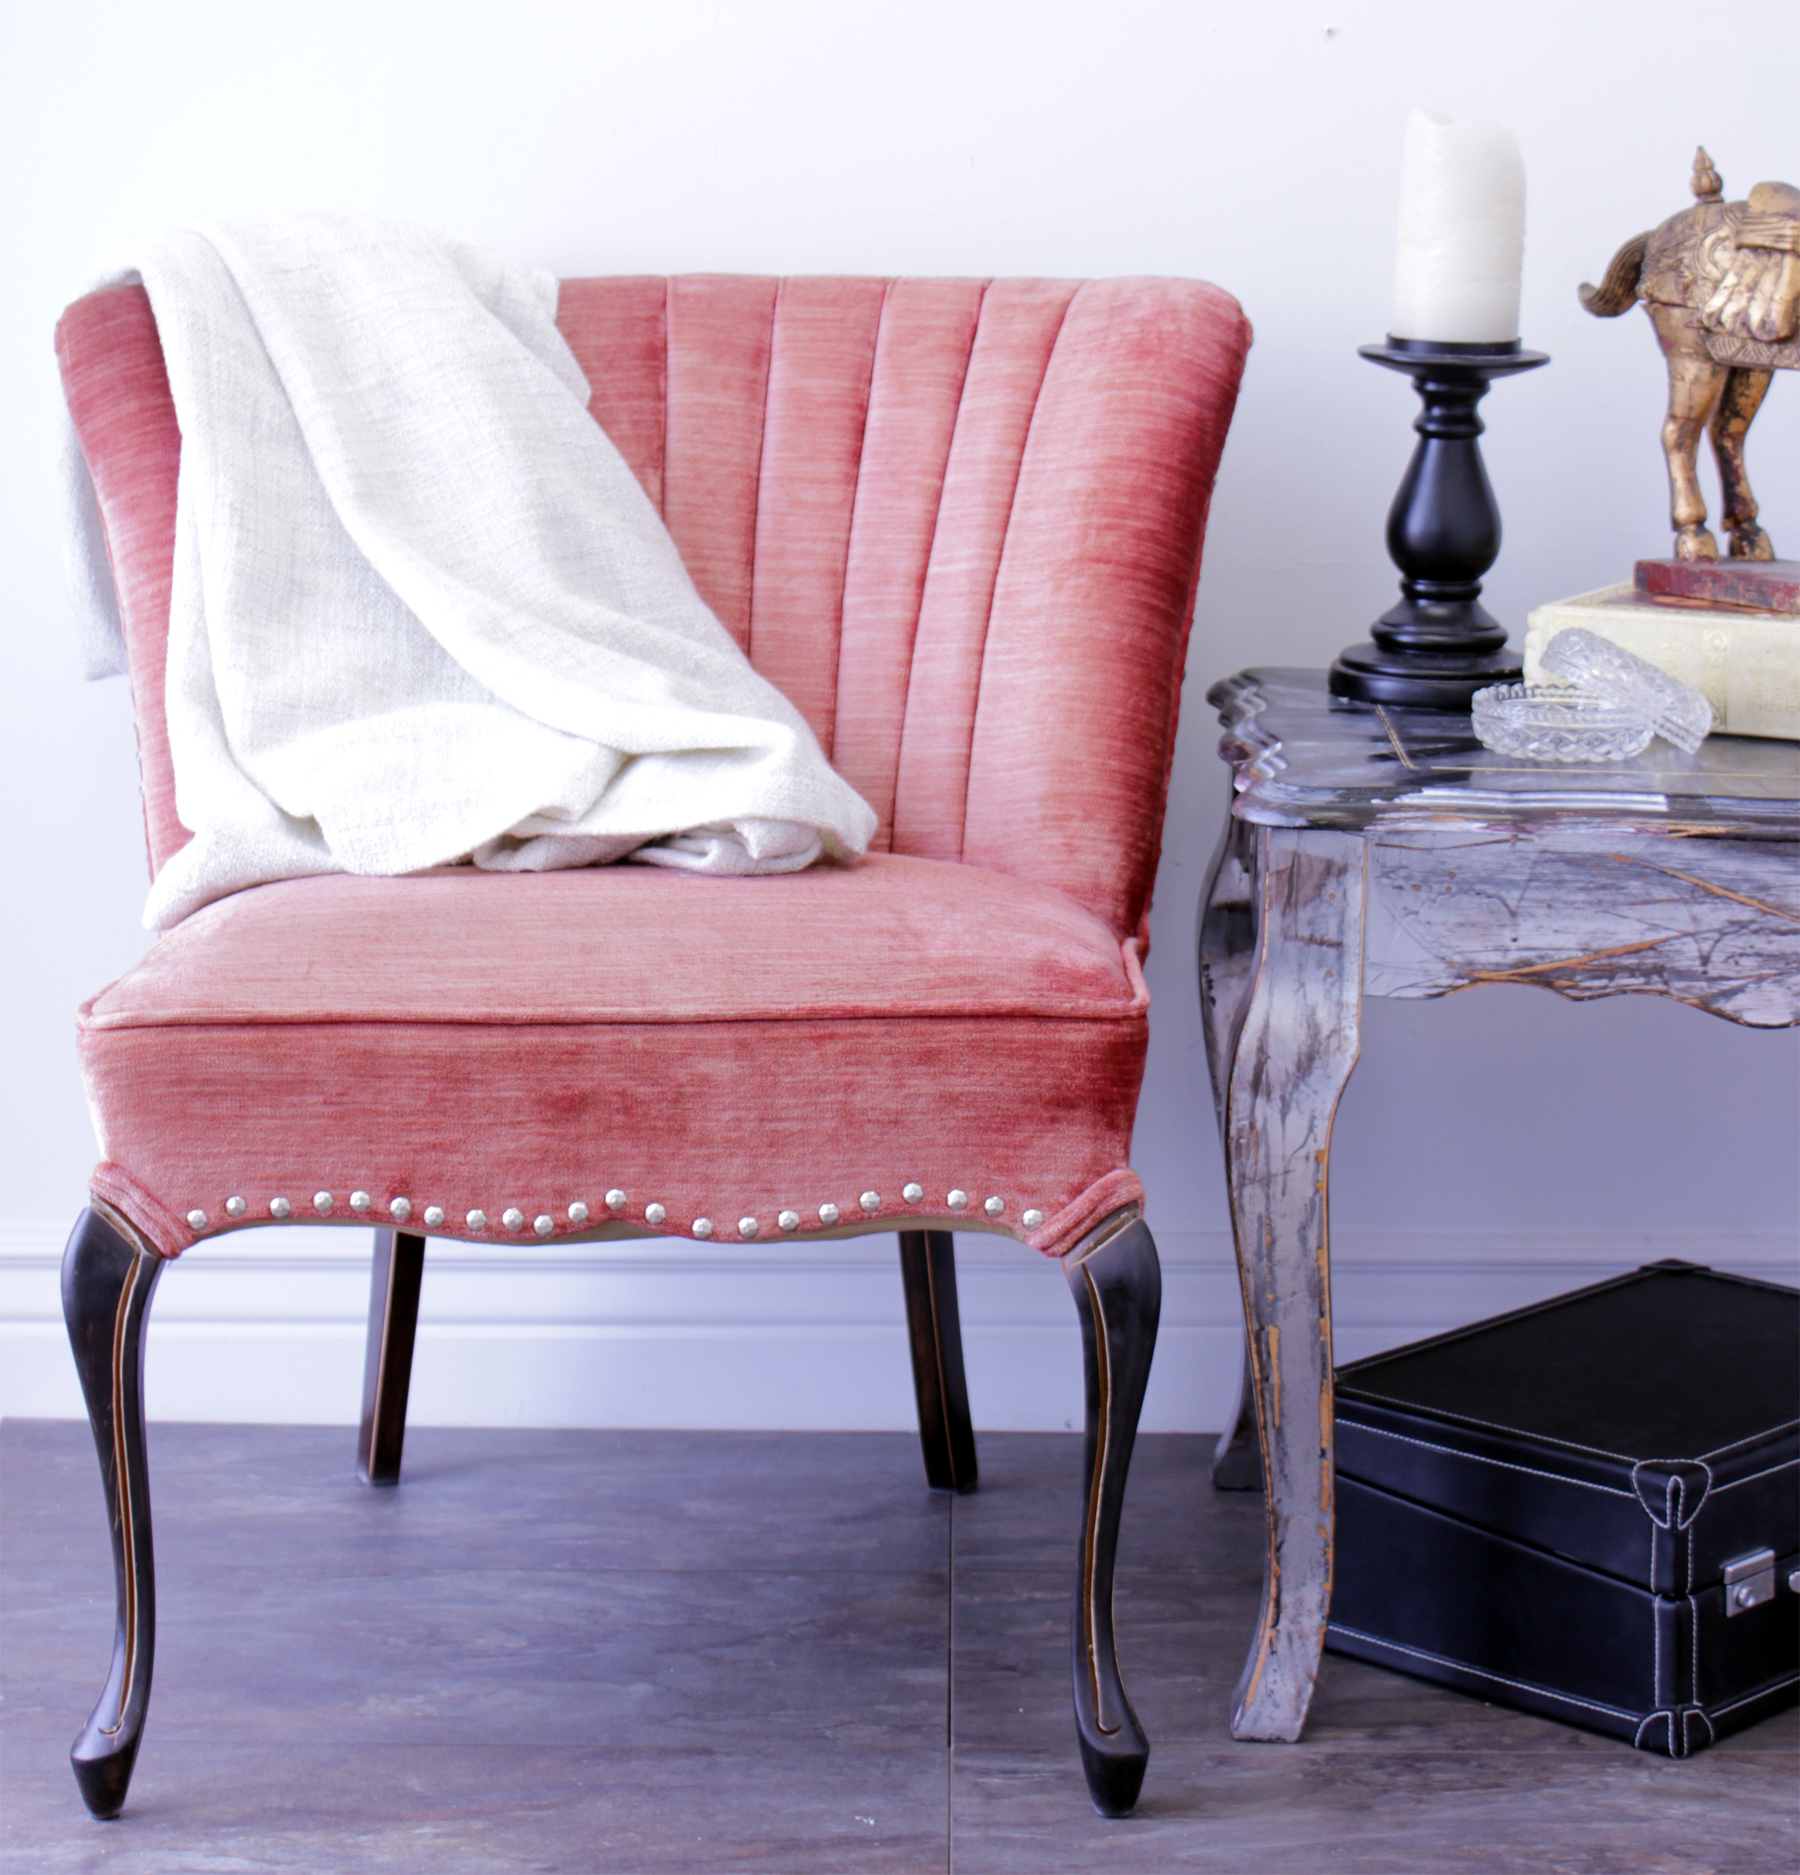 DIY French Provincial Chair Update – Marc and Mandy Show